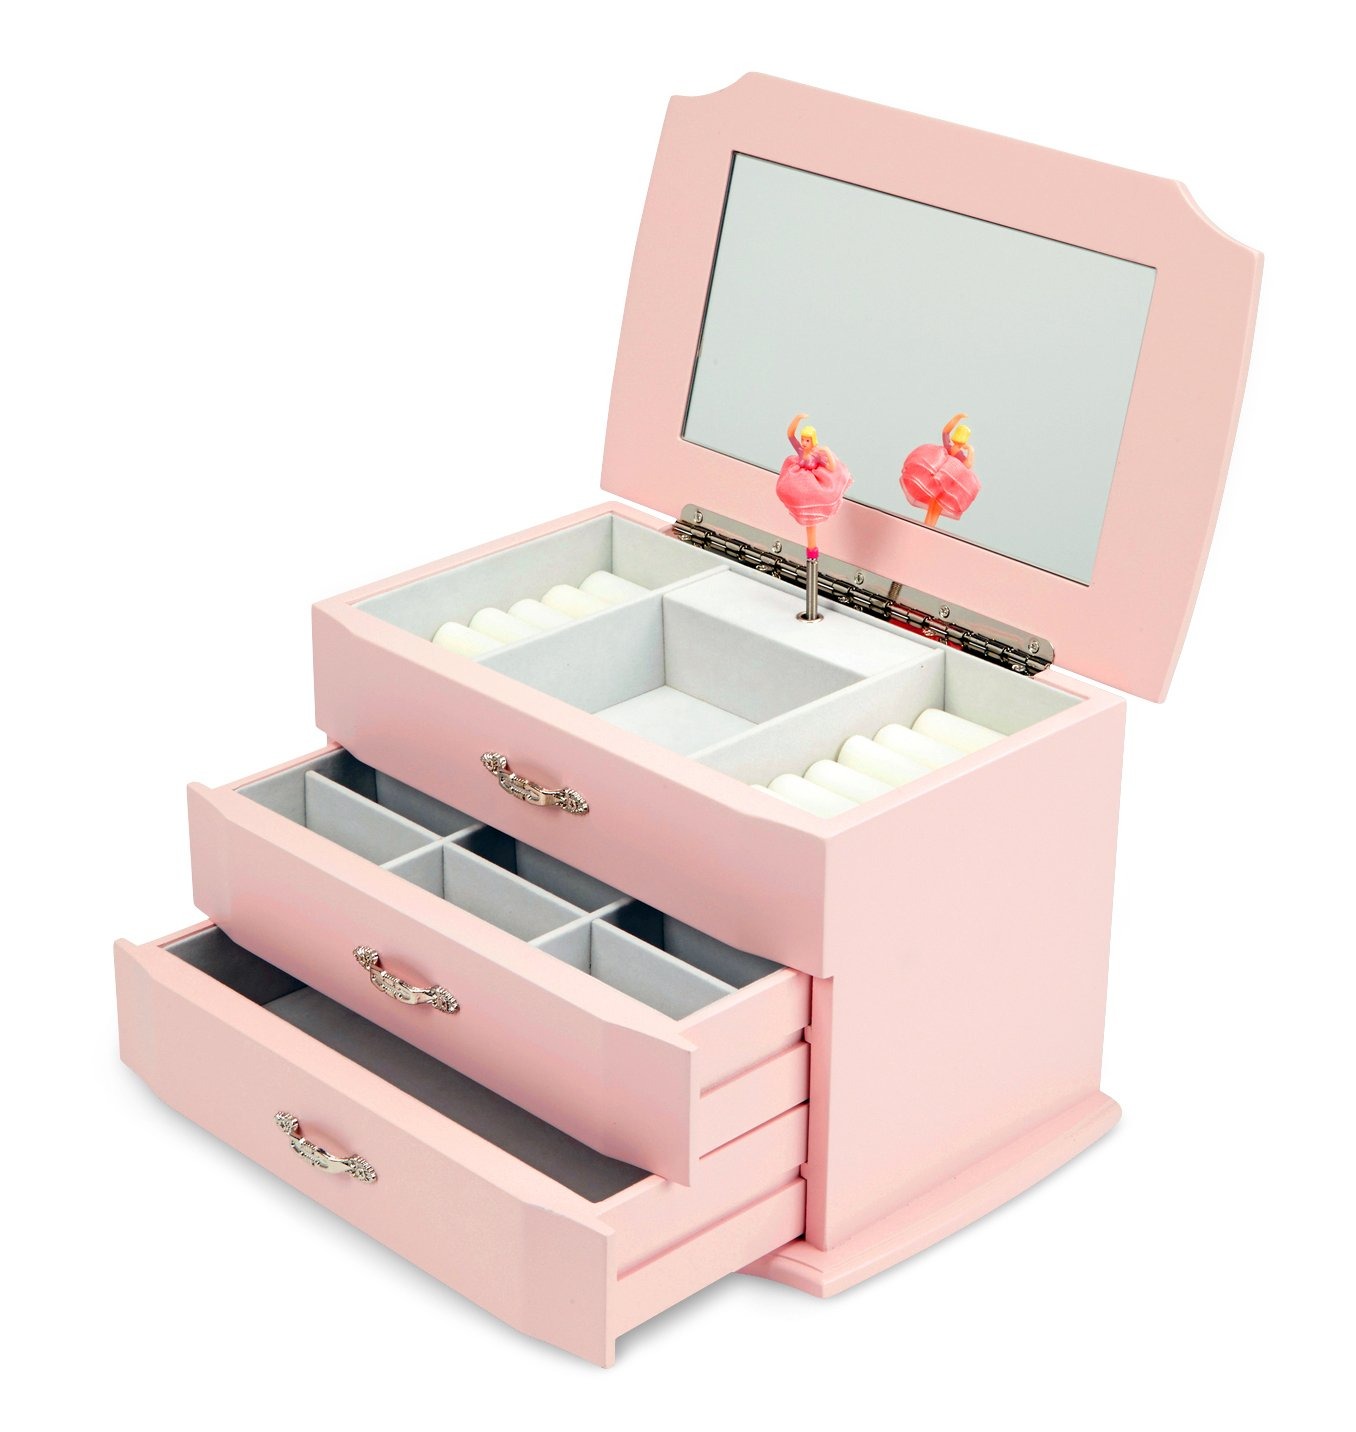 JewelKeeper Girls Wooden Musical Jewelry Box with Pullout Drawers, Classic Design with Ballerina and Mirror, Swan Lake Tune Rose Pink